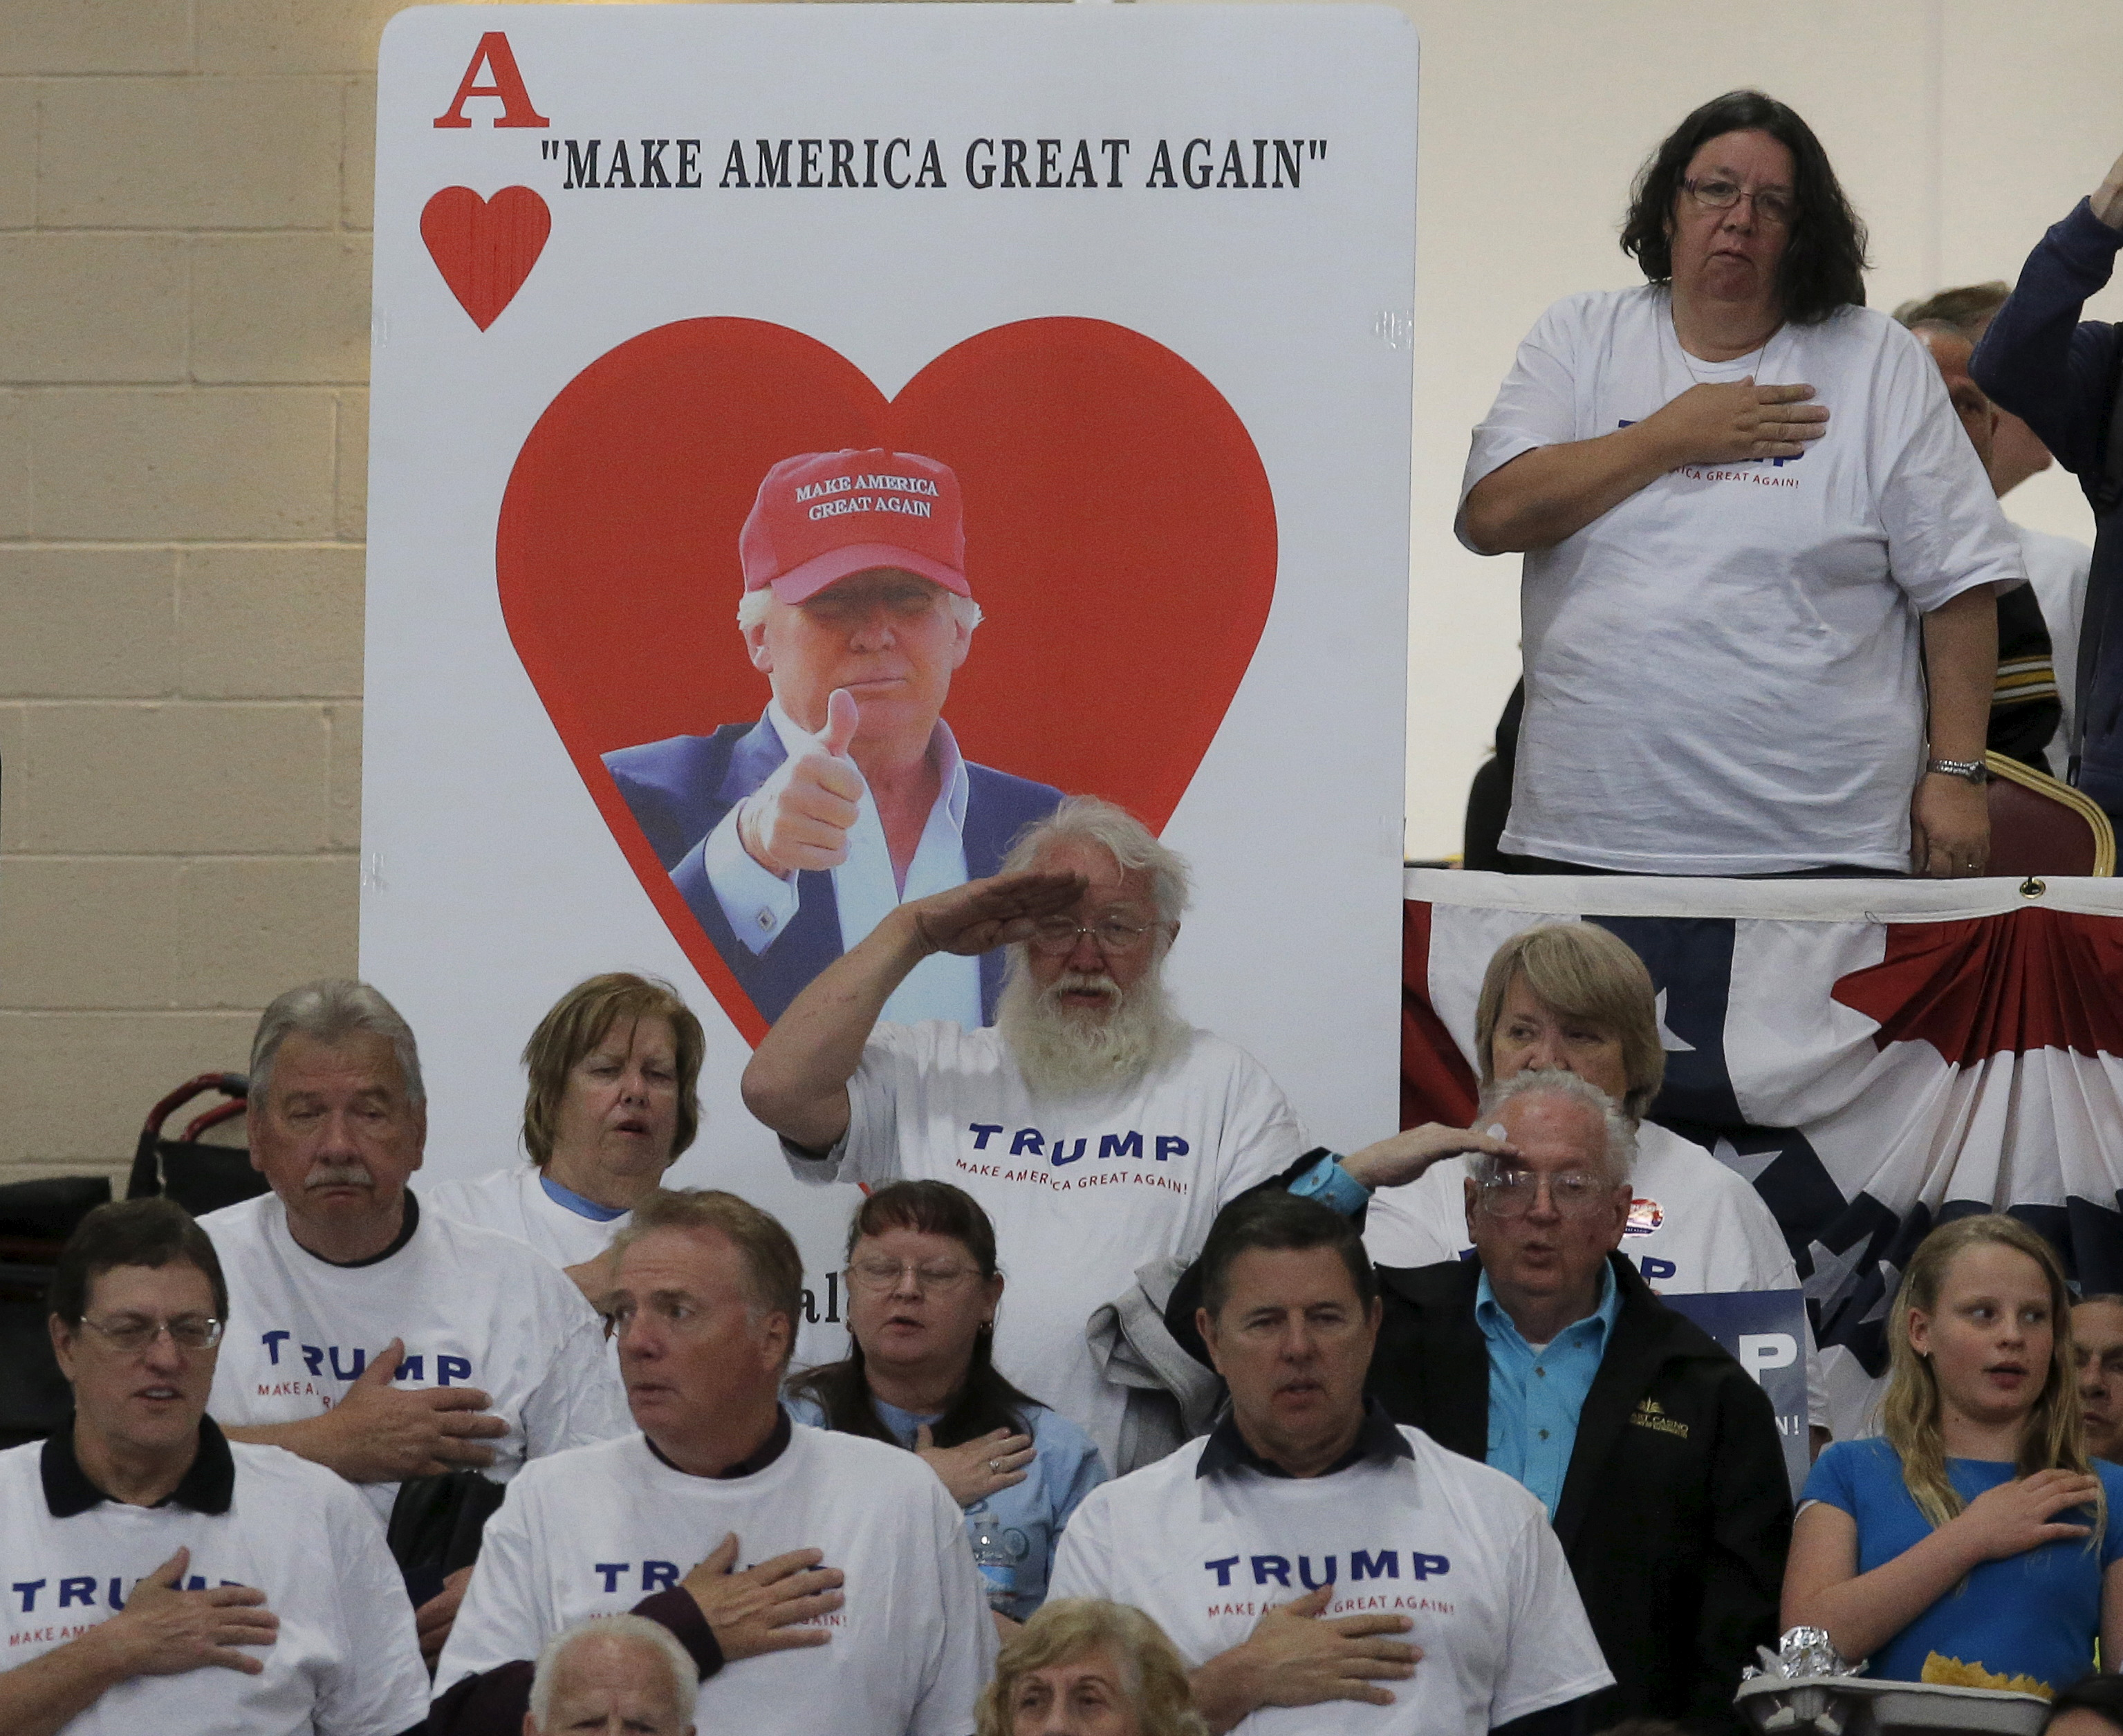 Supporters of U.S. Republican presidential candidate Donald Trump take the Pledge of Allegiance at a campaign rally in Las Vegas, Nevada. Photo by Jim Young?Reuters